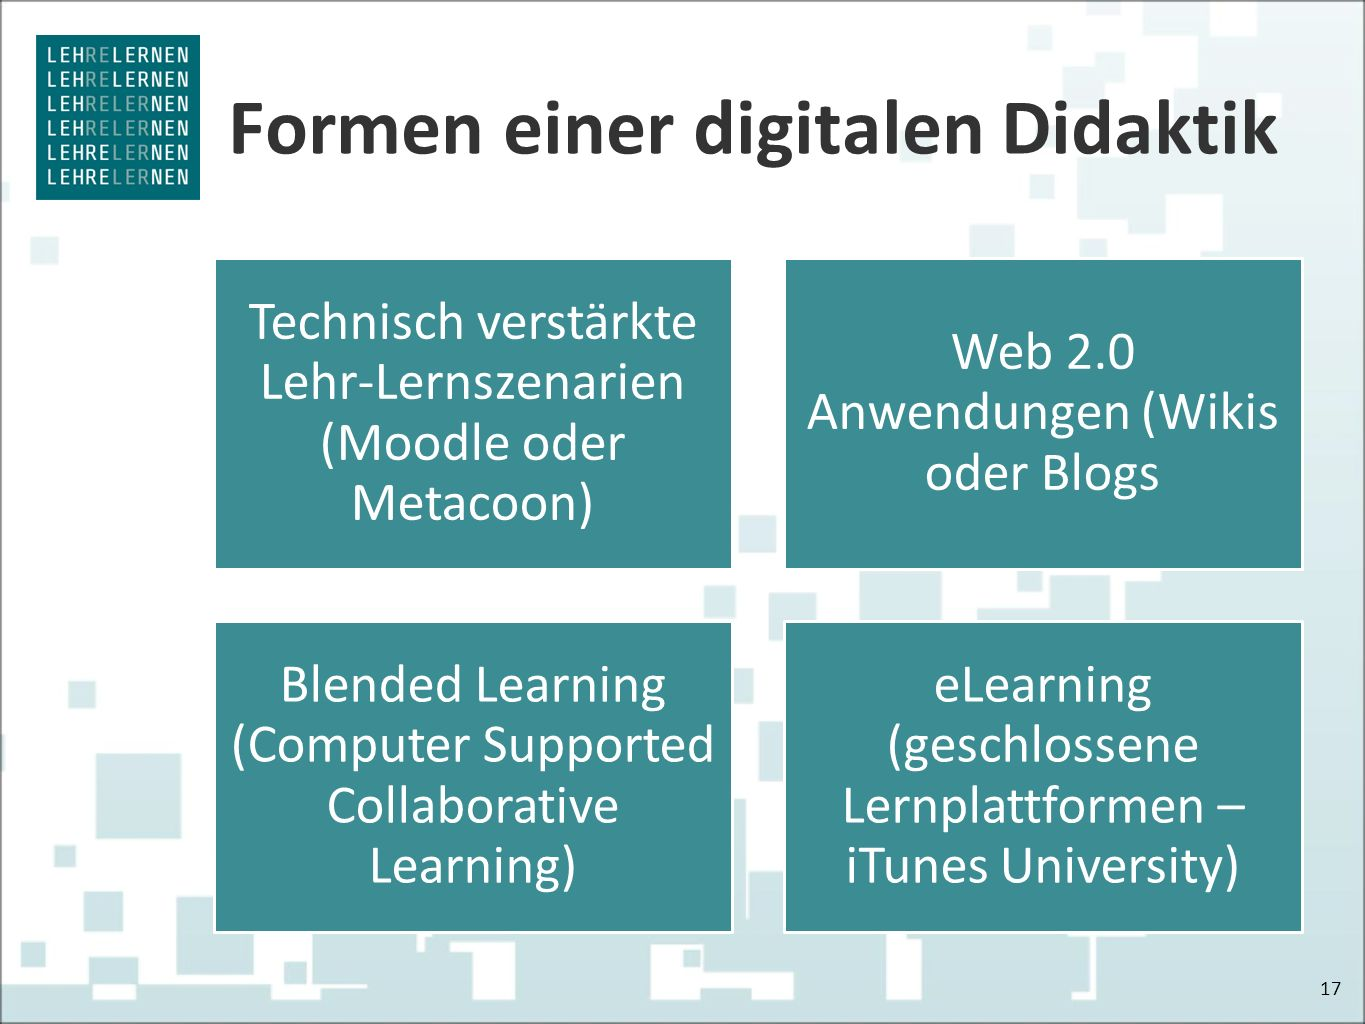 Formen einer digitalen Didaktik 17 Technisch verstärkte Lehr-Lernszenarien (Moodle oder Metacoon) Web 2.0 Anwendungen (Wikis oder Blogs Blended Learning (Computer Supported Collaborative Learning) eLearning (geschlossene Lernplattformen – iTunes University)